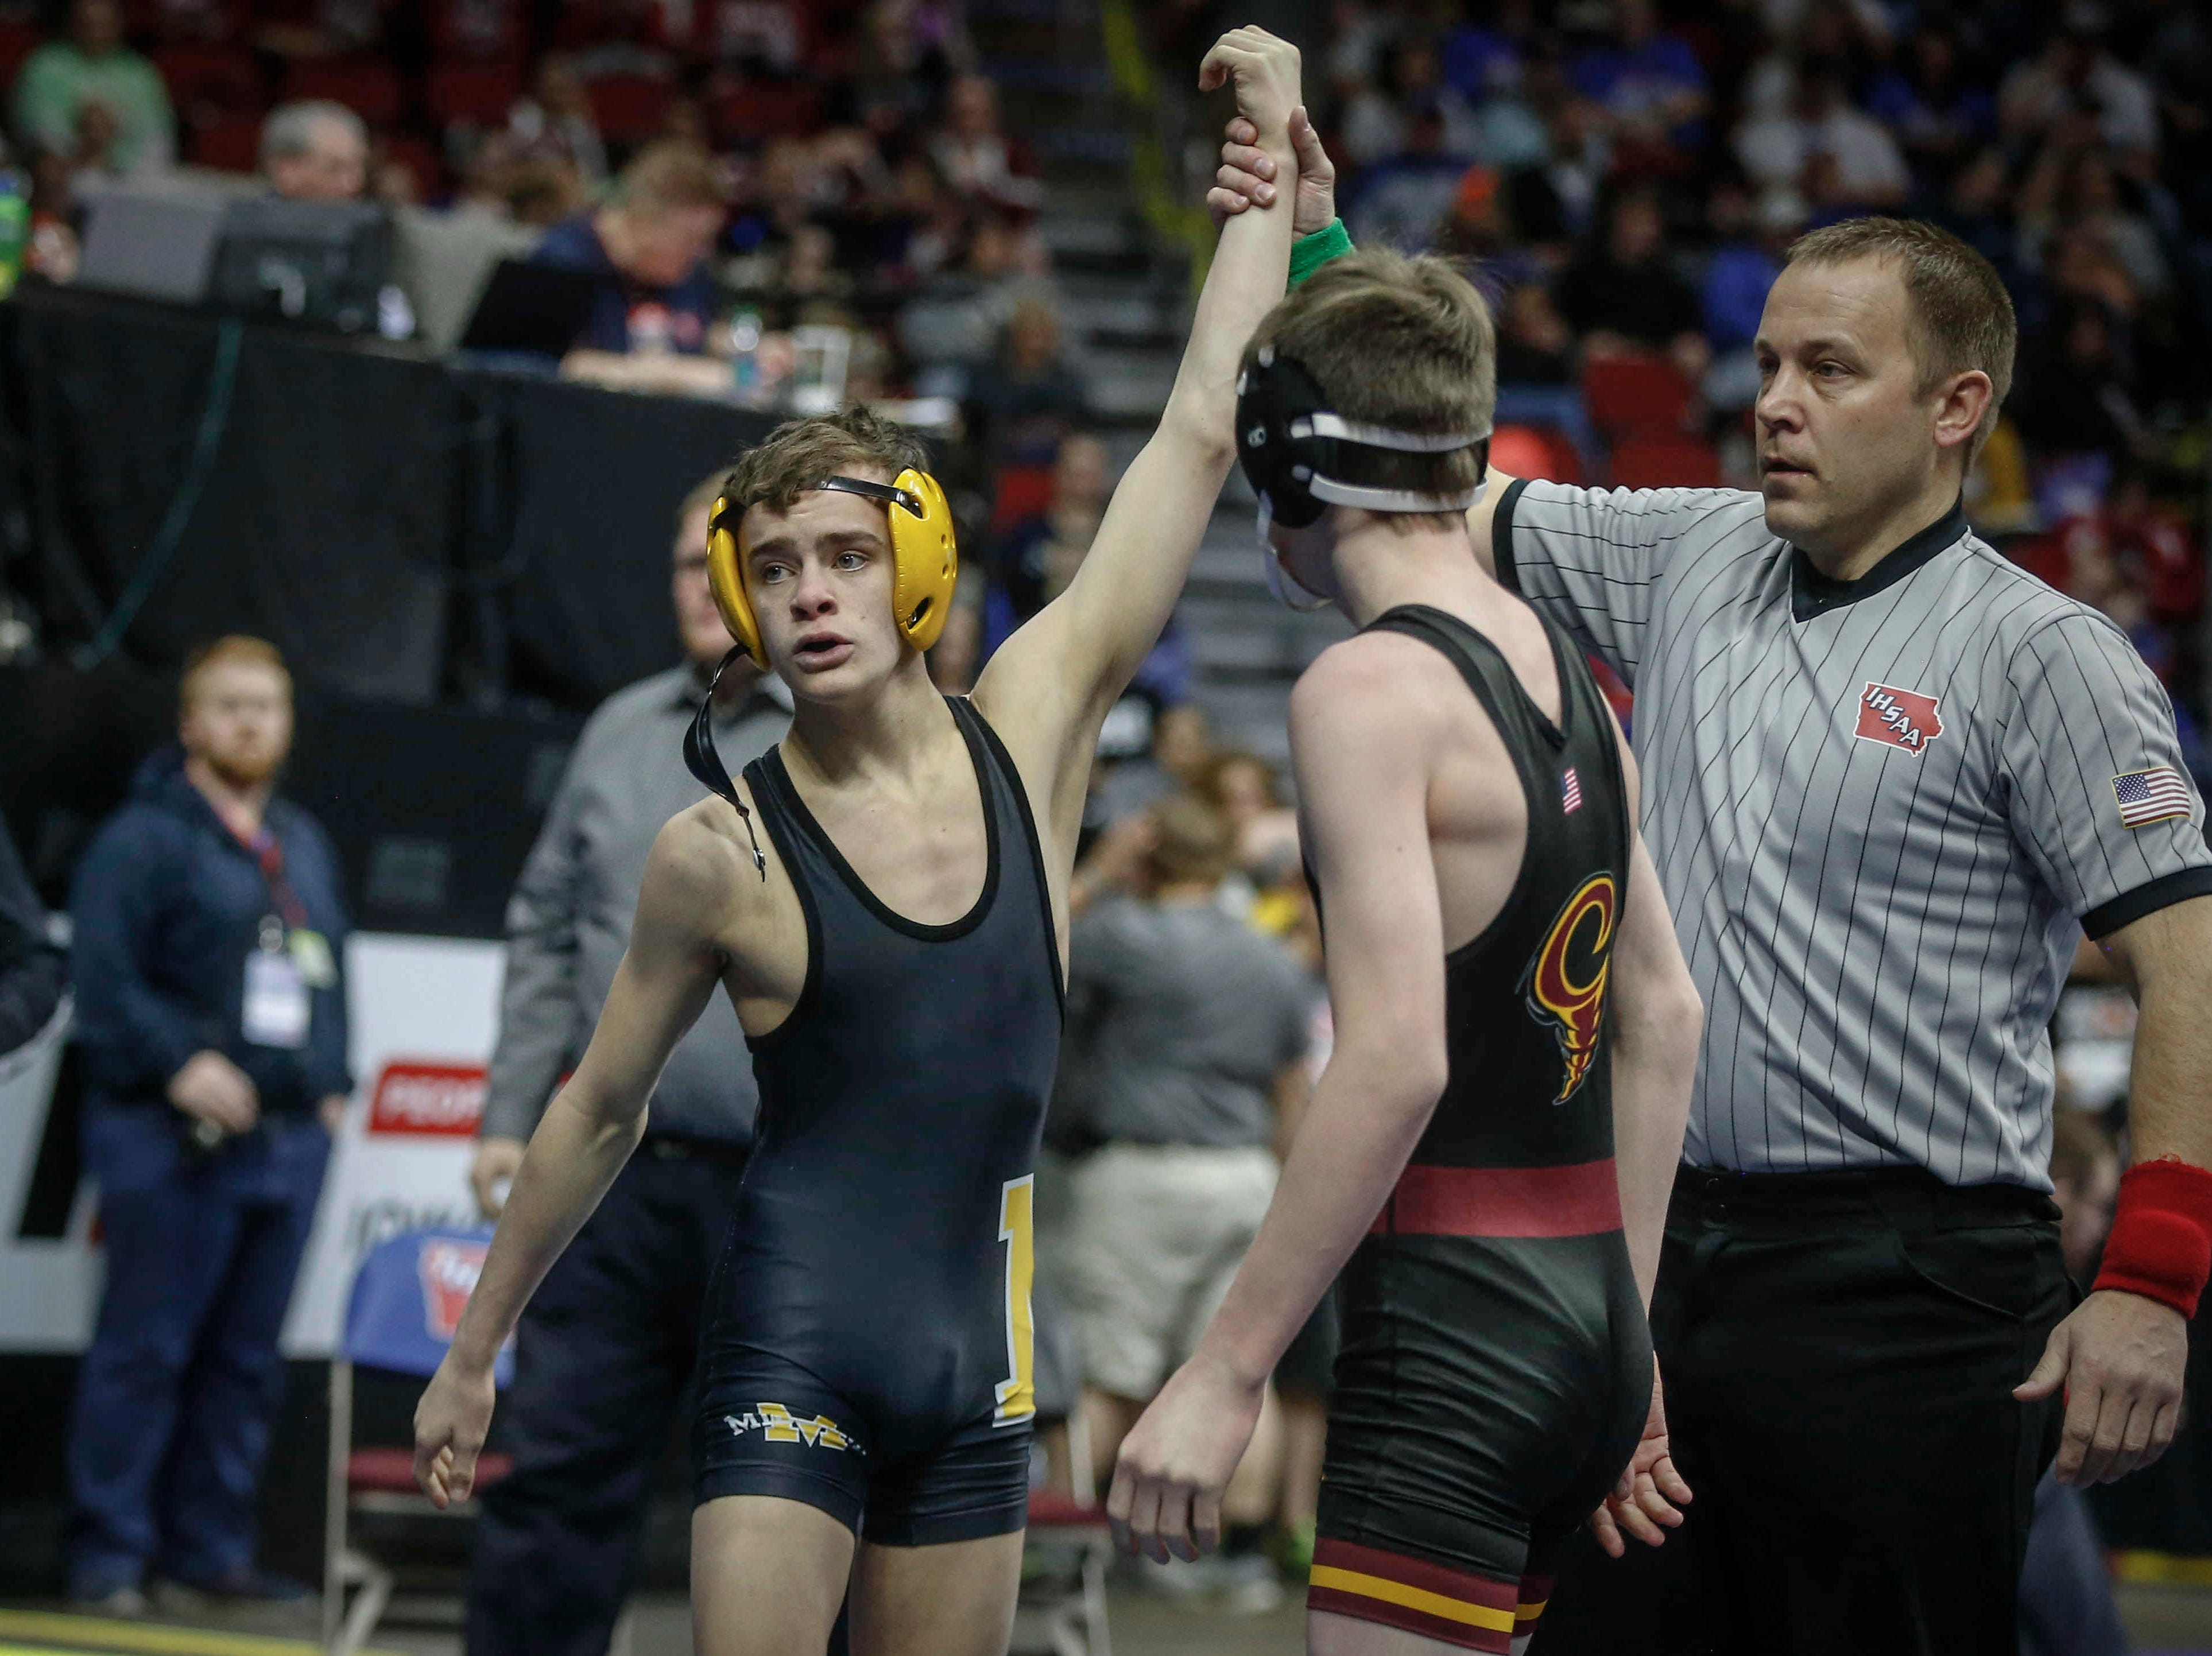 Midland sophomore Damon Huston beat Denver freshman Joe Ebaugh in their match at 106 pounds during the state wrestling quarterfinals on Friday, Feb. 15, 2019, at Wells Fargo Arena in Des Moines.